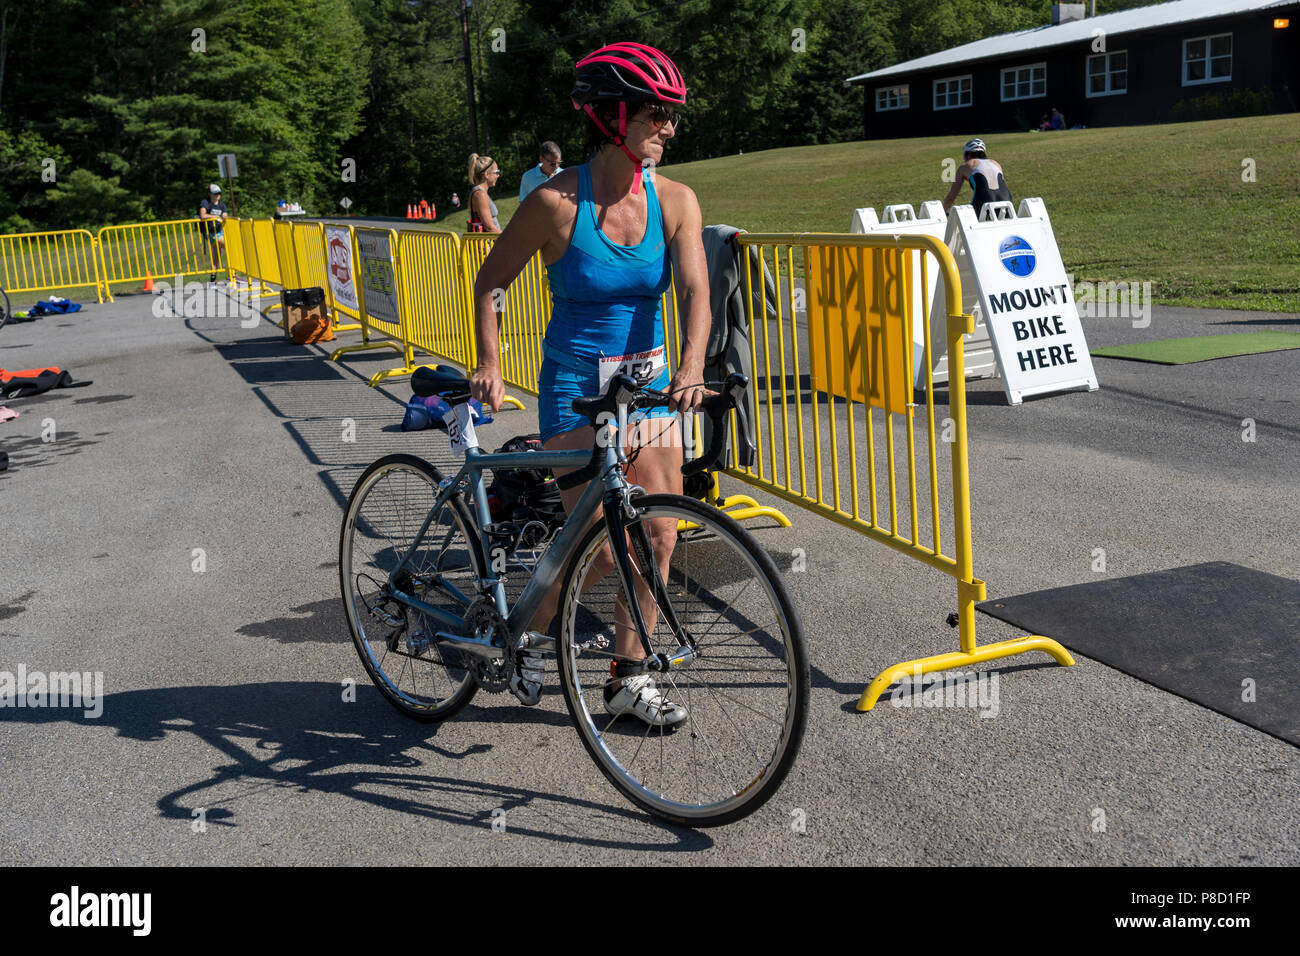 Melissa Anne Landau competiting in the bike segment in the 2018 Stissing Triathlon - Stock Image